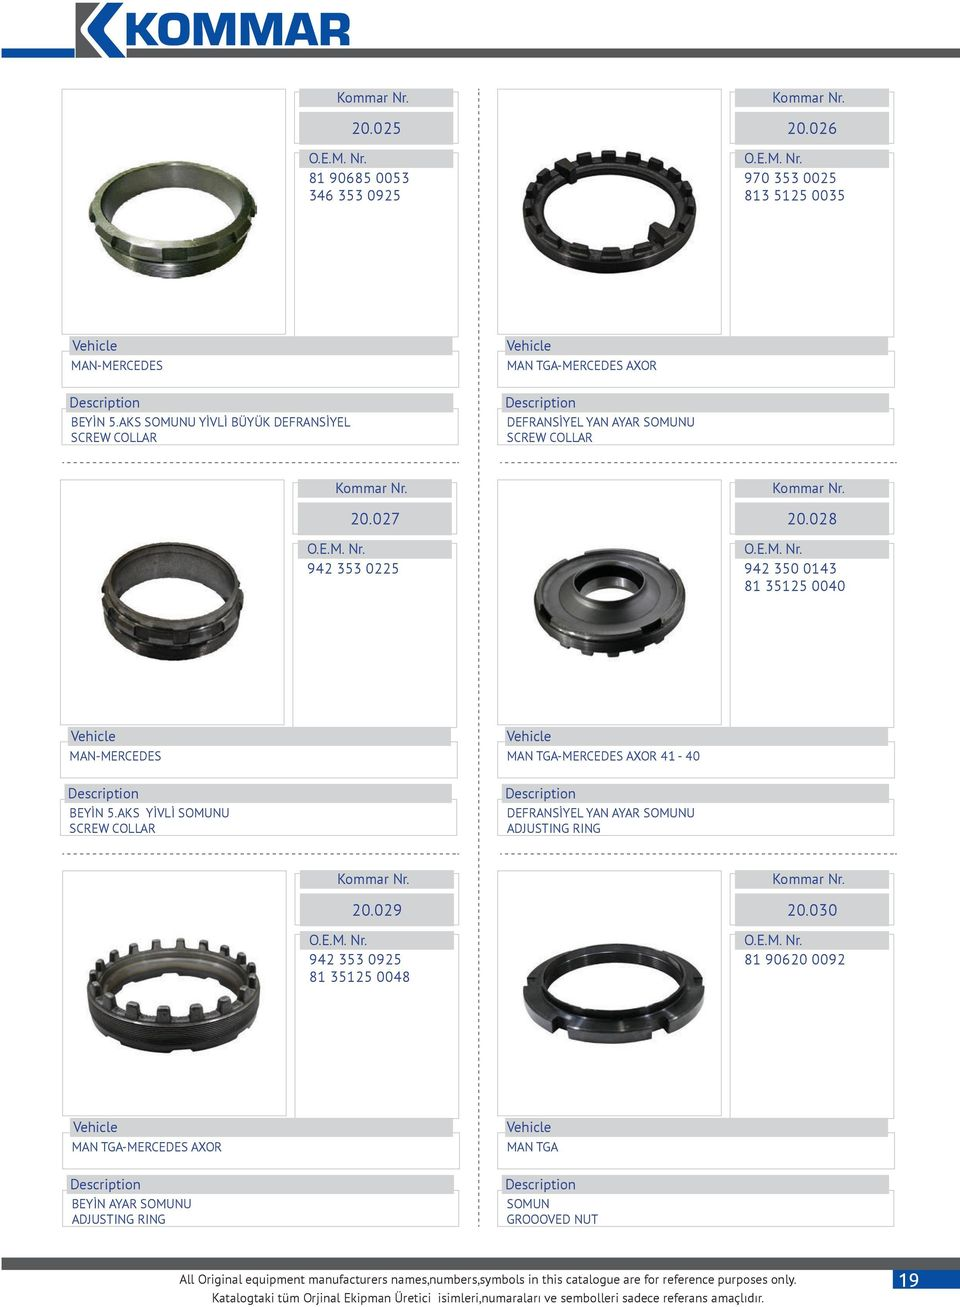 028 942 350 0143 81 35125 0040 MAN-MERCEDES BEYİN 5.AKS YİVLİ SOMUNU SCREW COLLAR MAN TGA-MERCEDES AXOR 41-40 DEFRANSİYEL YAN AYAR SOMUNU ADJUSTING RING 20.